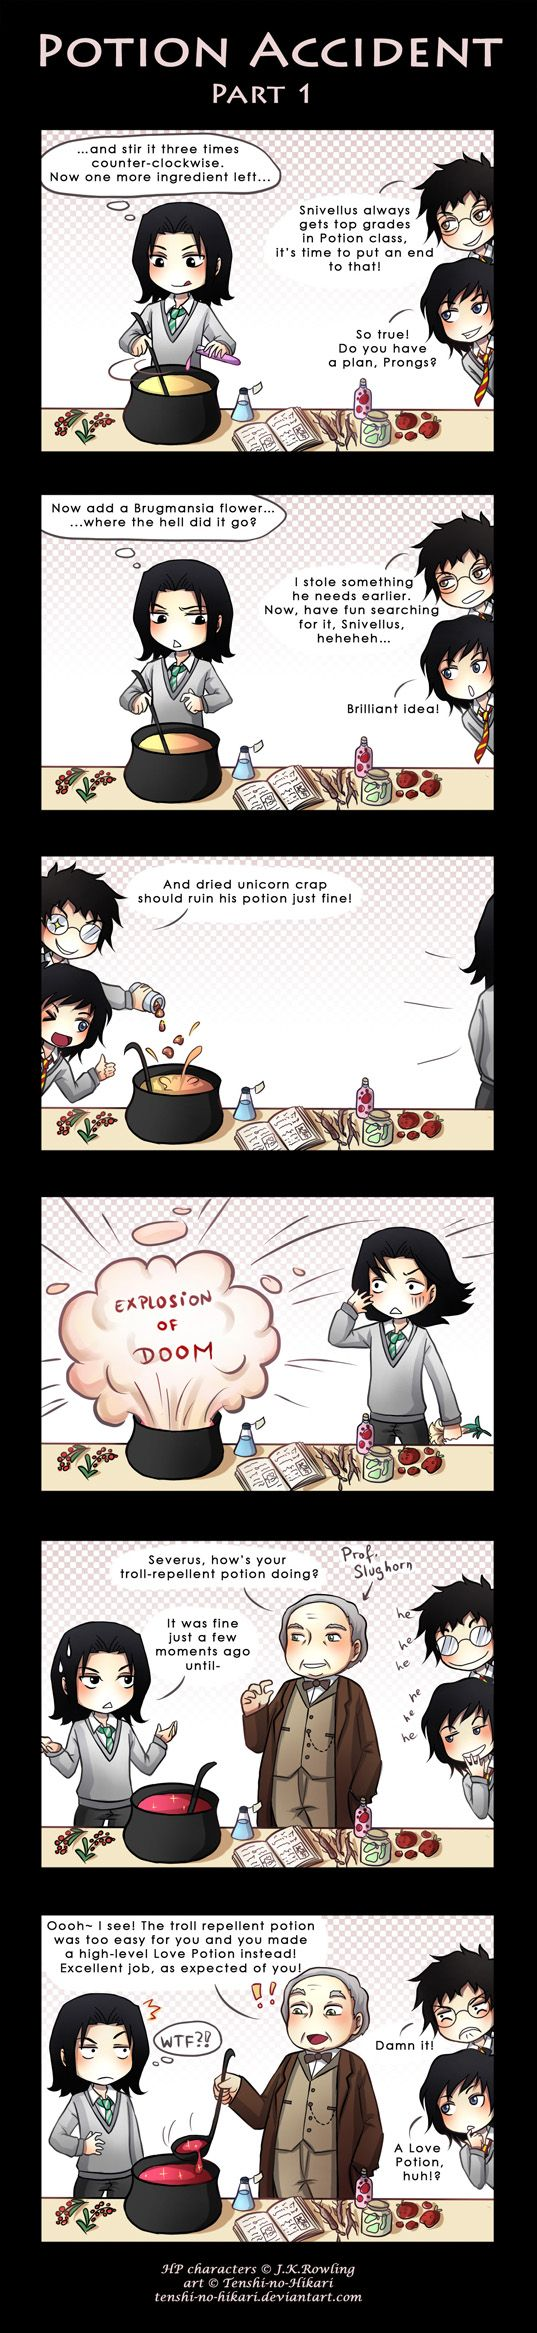 HP - Severus Snape, James Potter and Sirius Black. Chini - Potion accident -part 1- by Tenshi-no-Hikari